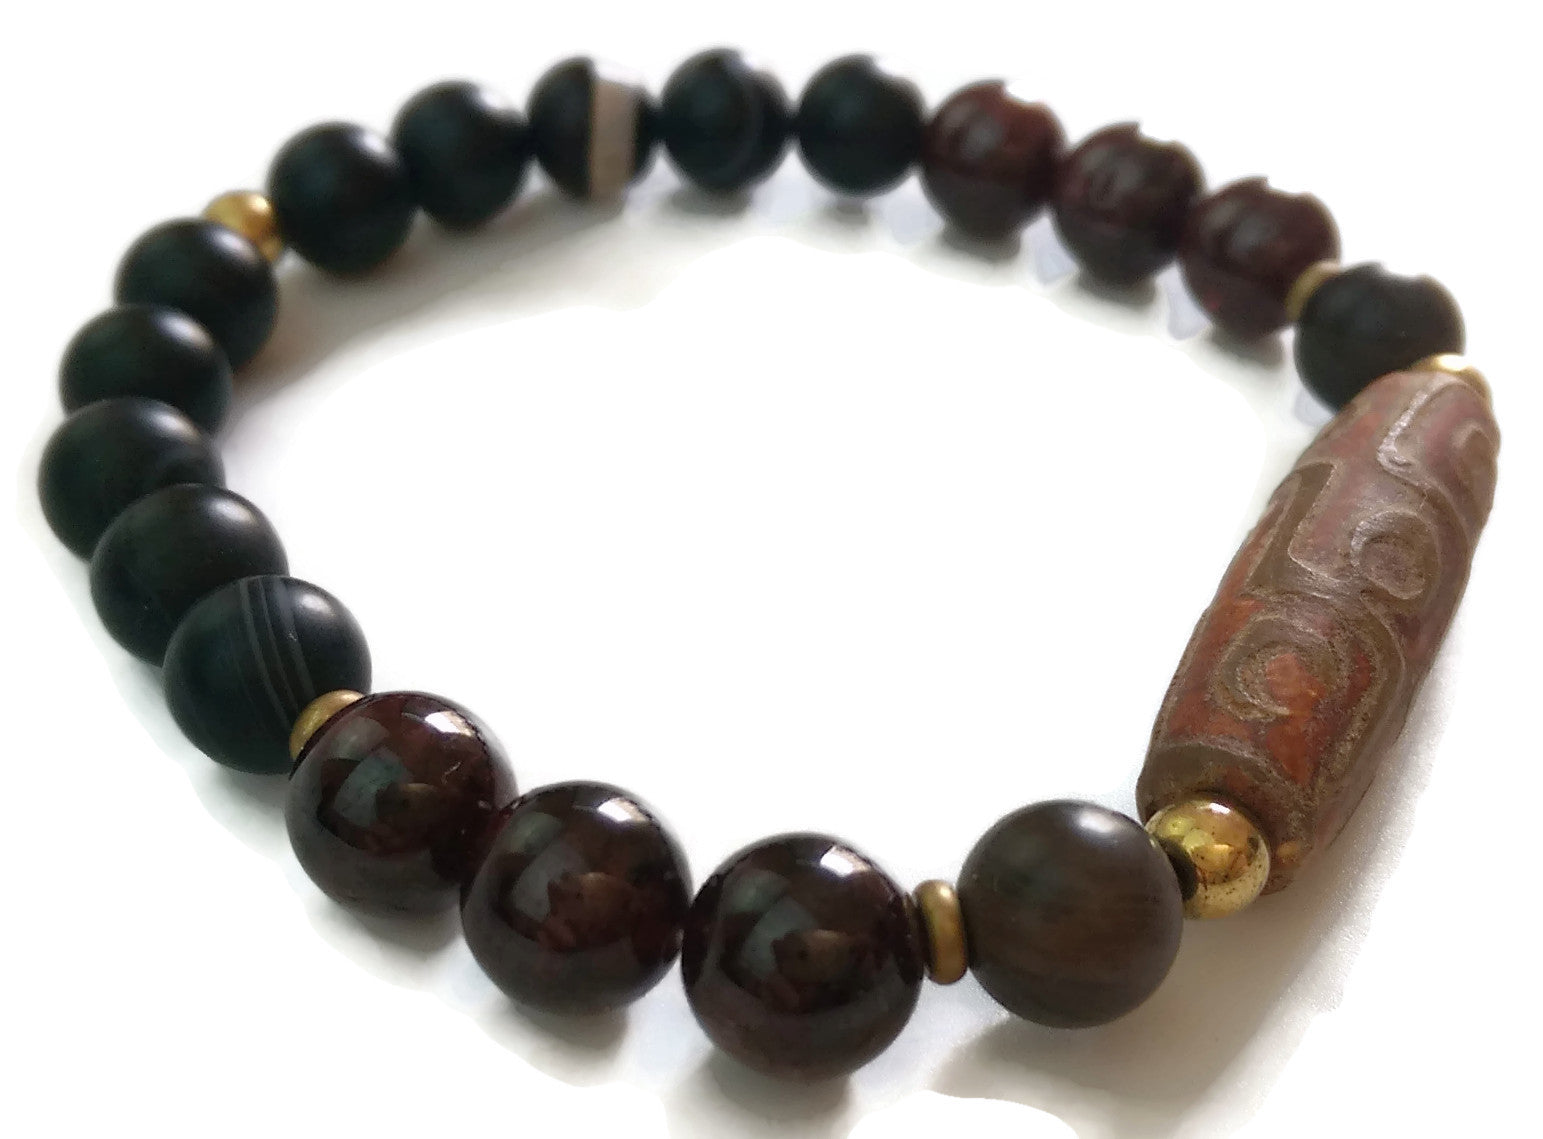 Earth Element 14k Gold Spacers 8mm Garnet, Medicine Dzi, 9 Eye Dzi Bead Minimal Meditation Yoga Wrist Mala Stretch Bracelet | Root Chakra